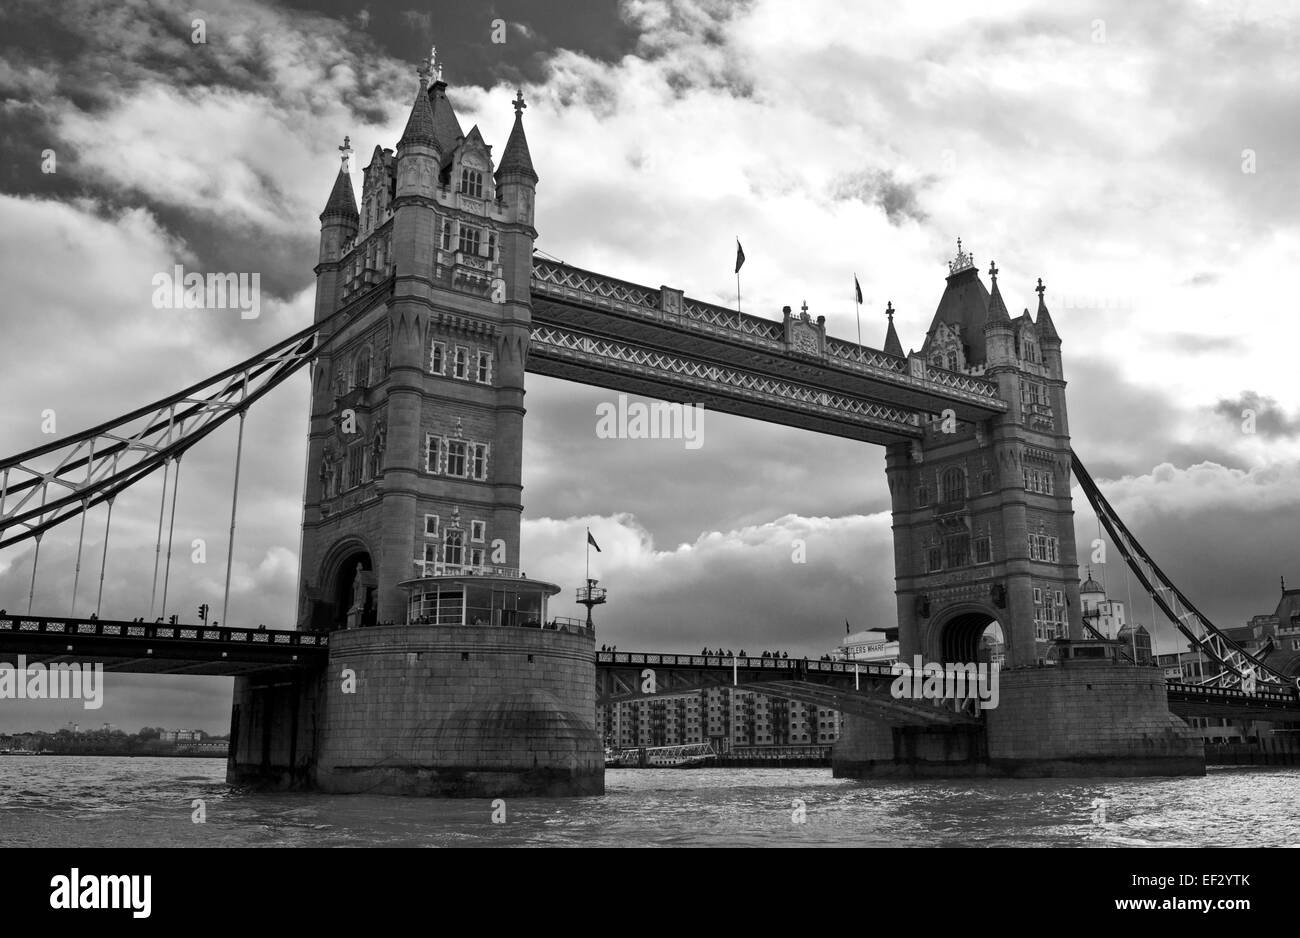 Dramatic black and white view of Tower Bridge against cloudy sky, seen from the River Thames, central London, England - Stock Image